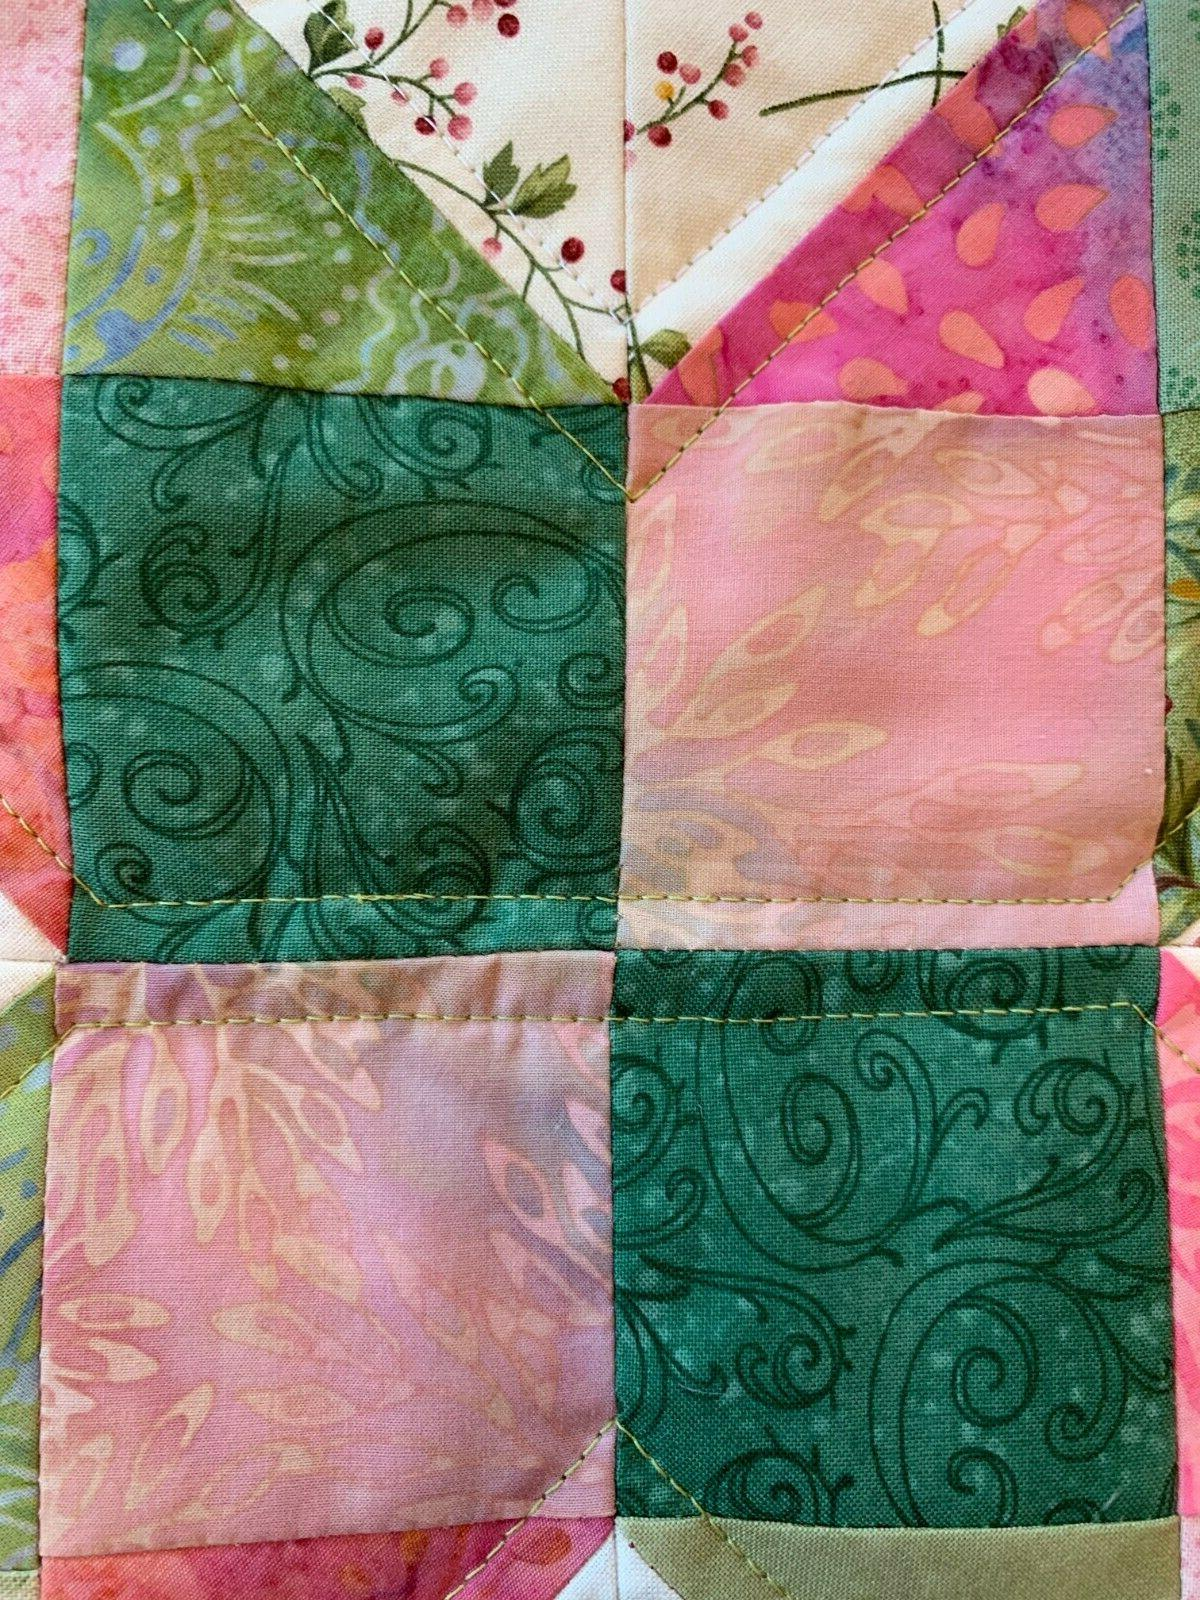 Spring Green Quilted Table Runner Floral Leaves